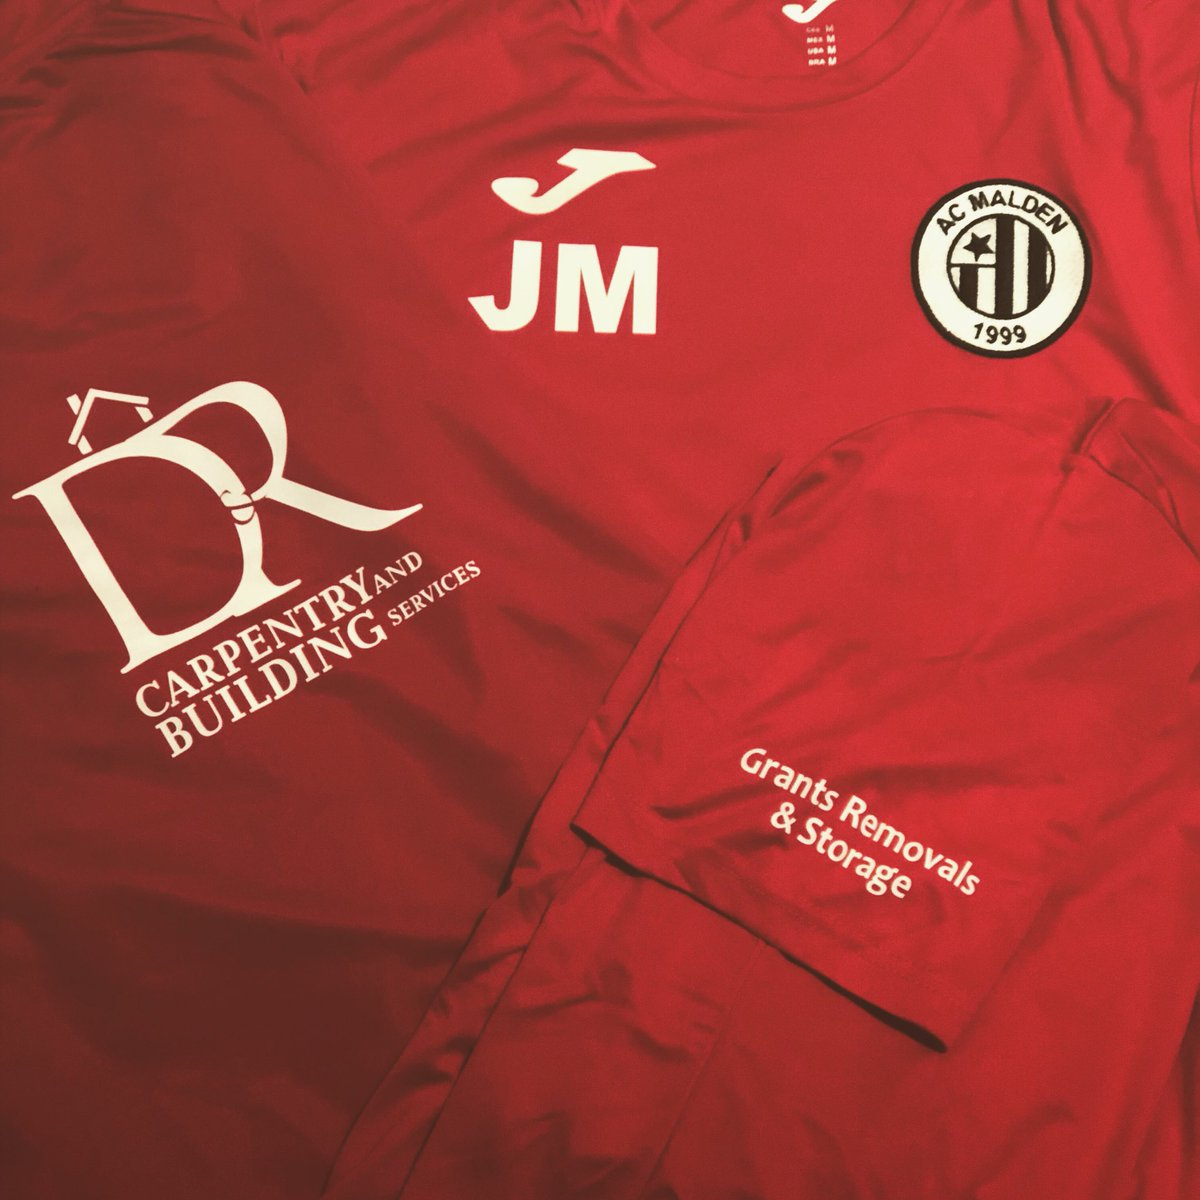 New AC Malden Merch courtesy of our official sponsors this season D&R Carpentry & Grant's Removals 🔴⚫️🔴⚫️